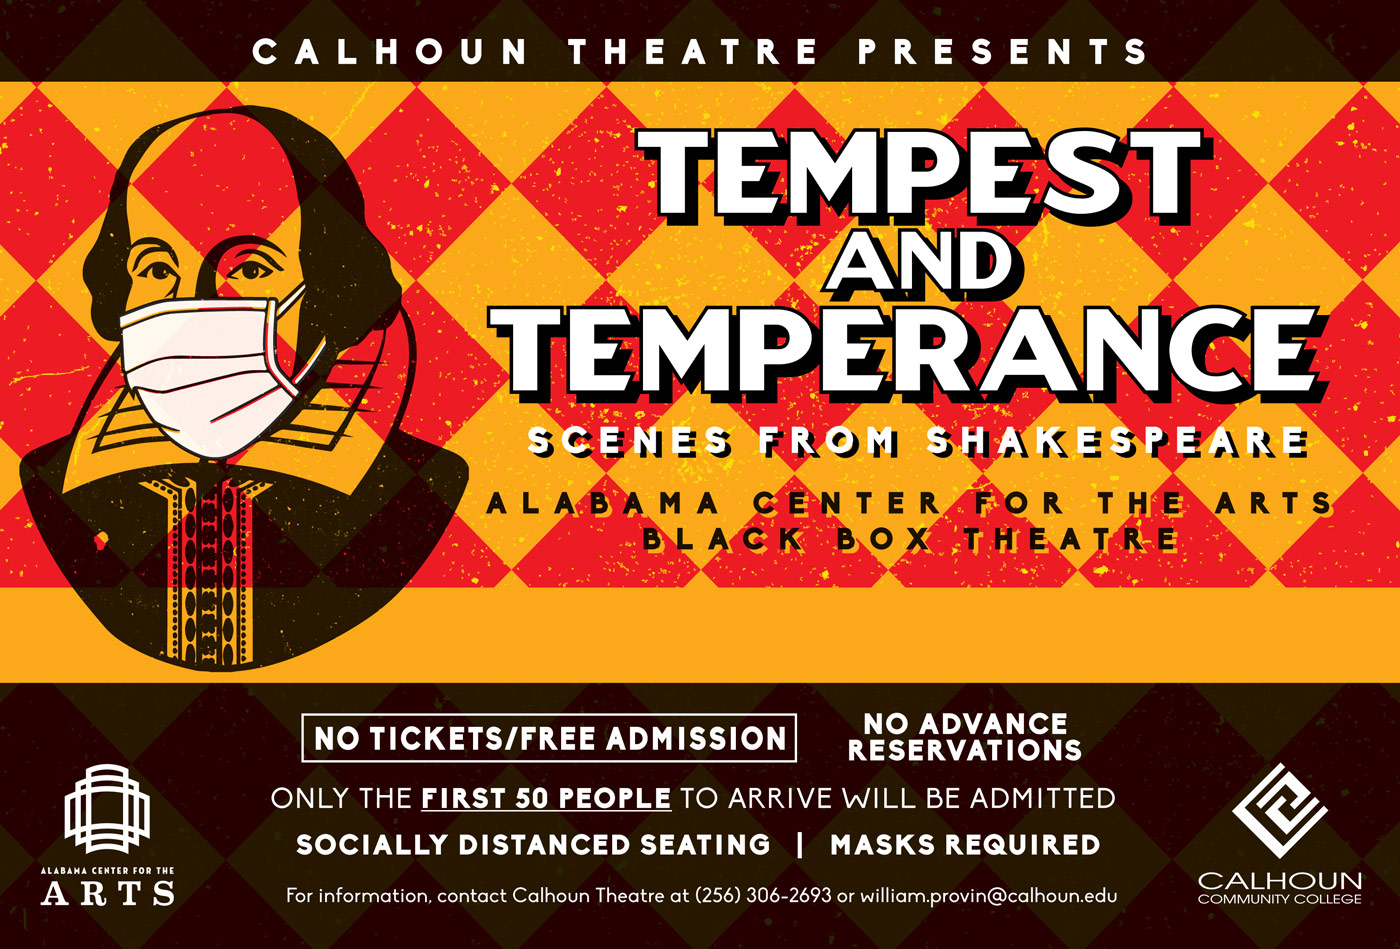 Tempest and Temperance